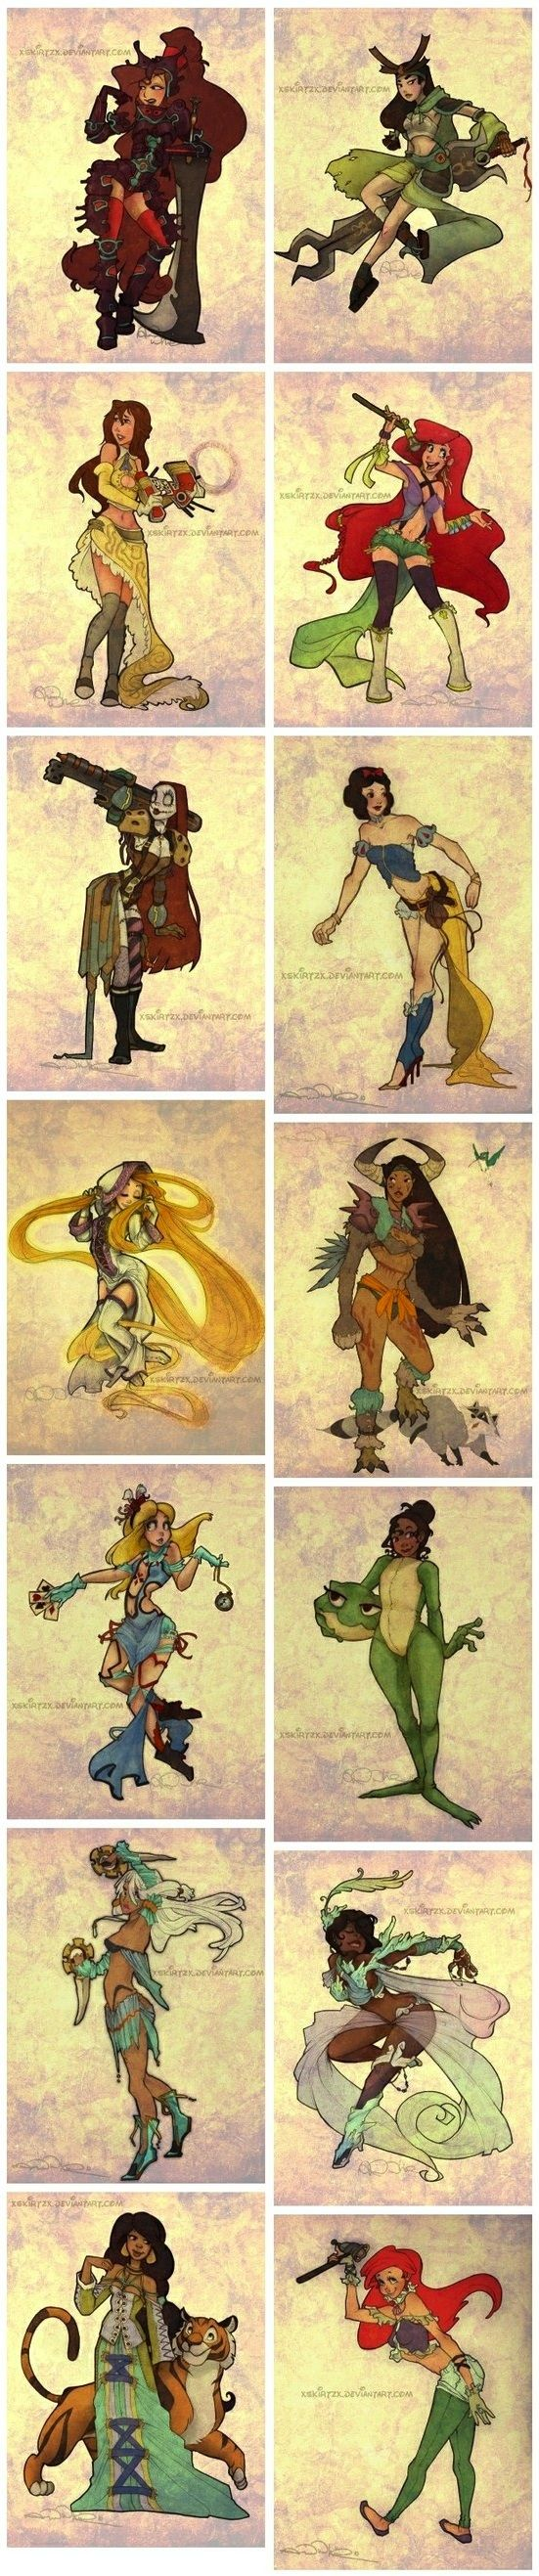 Steampunk Disney Princesses? Yes, please.